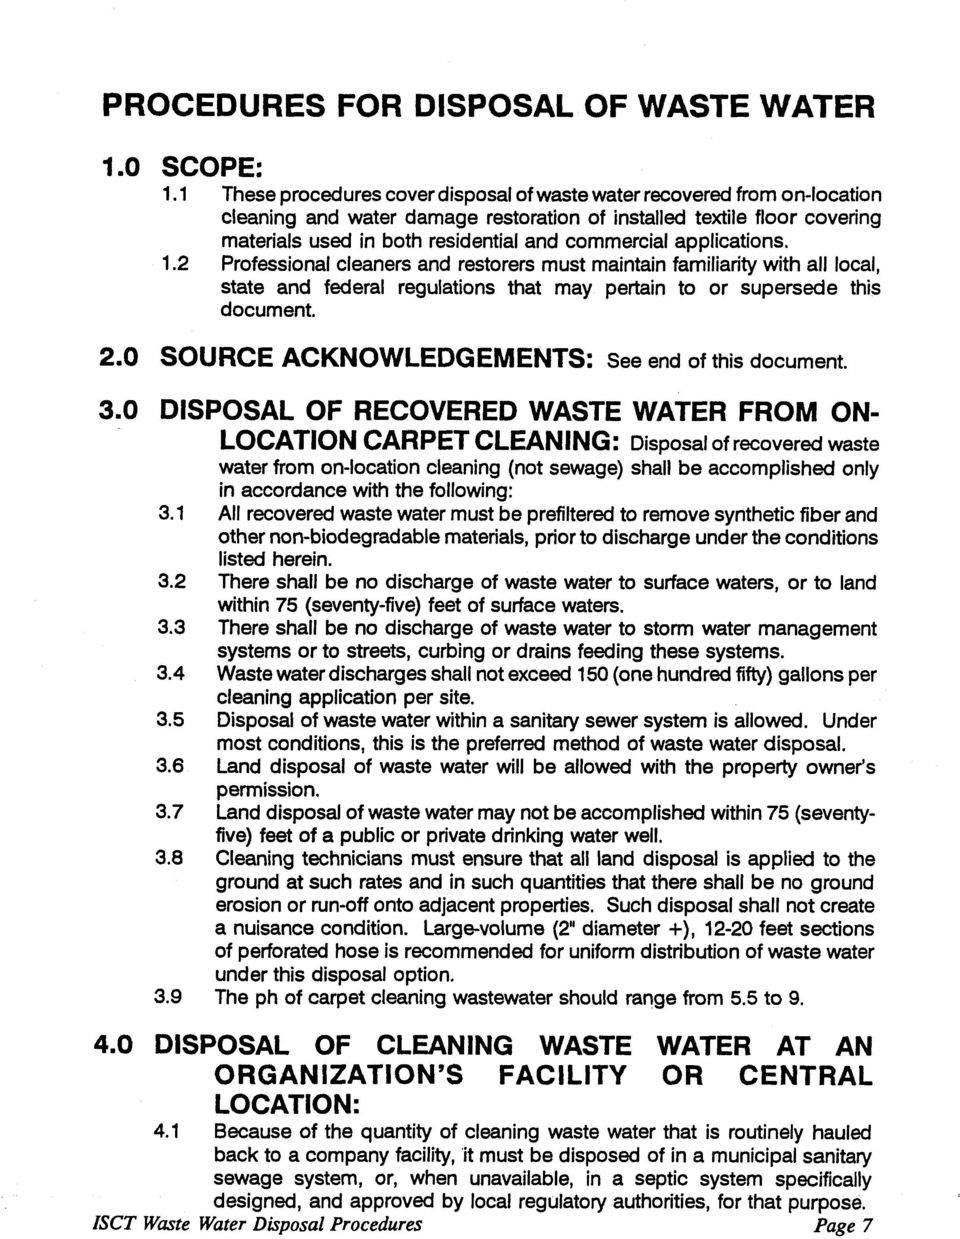 Professional cleaners and restorers must maintain familiarity with all local, state and federal regulations that may pertain to or supersede this document. 2.